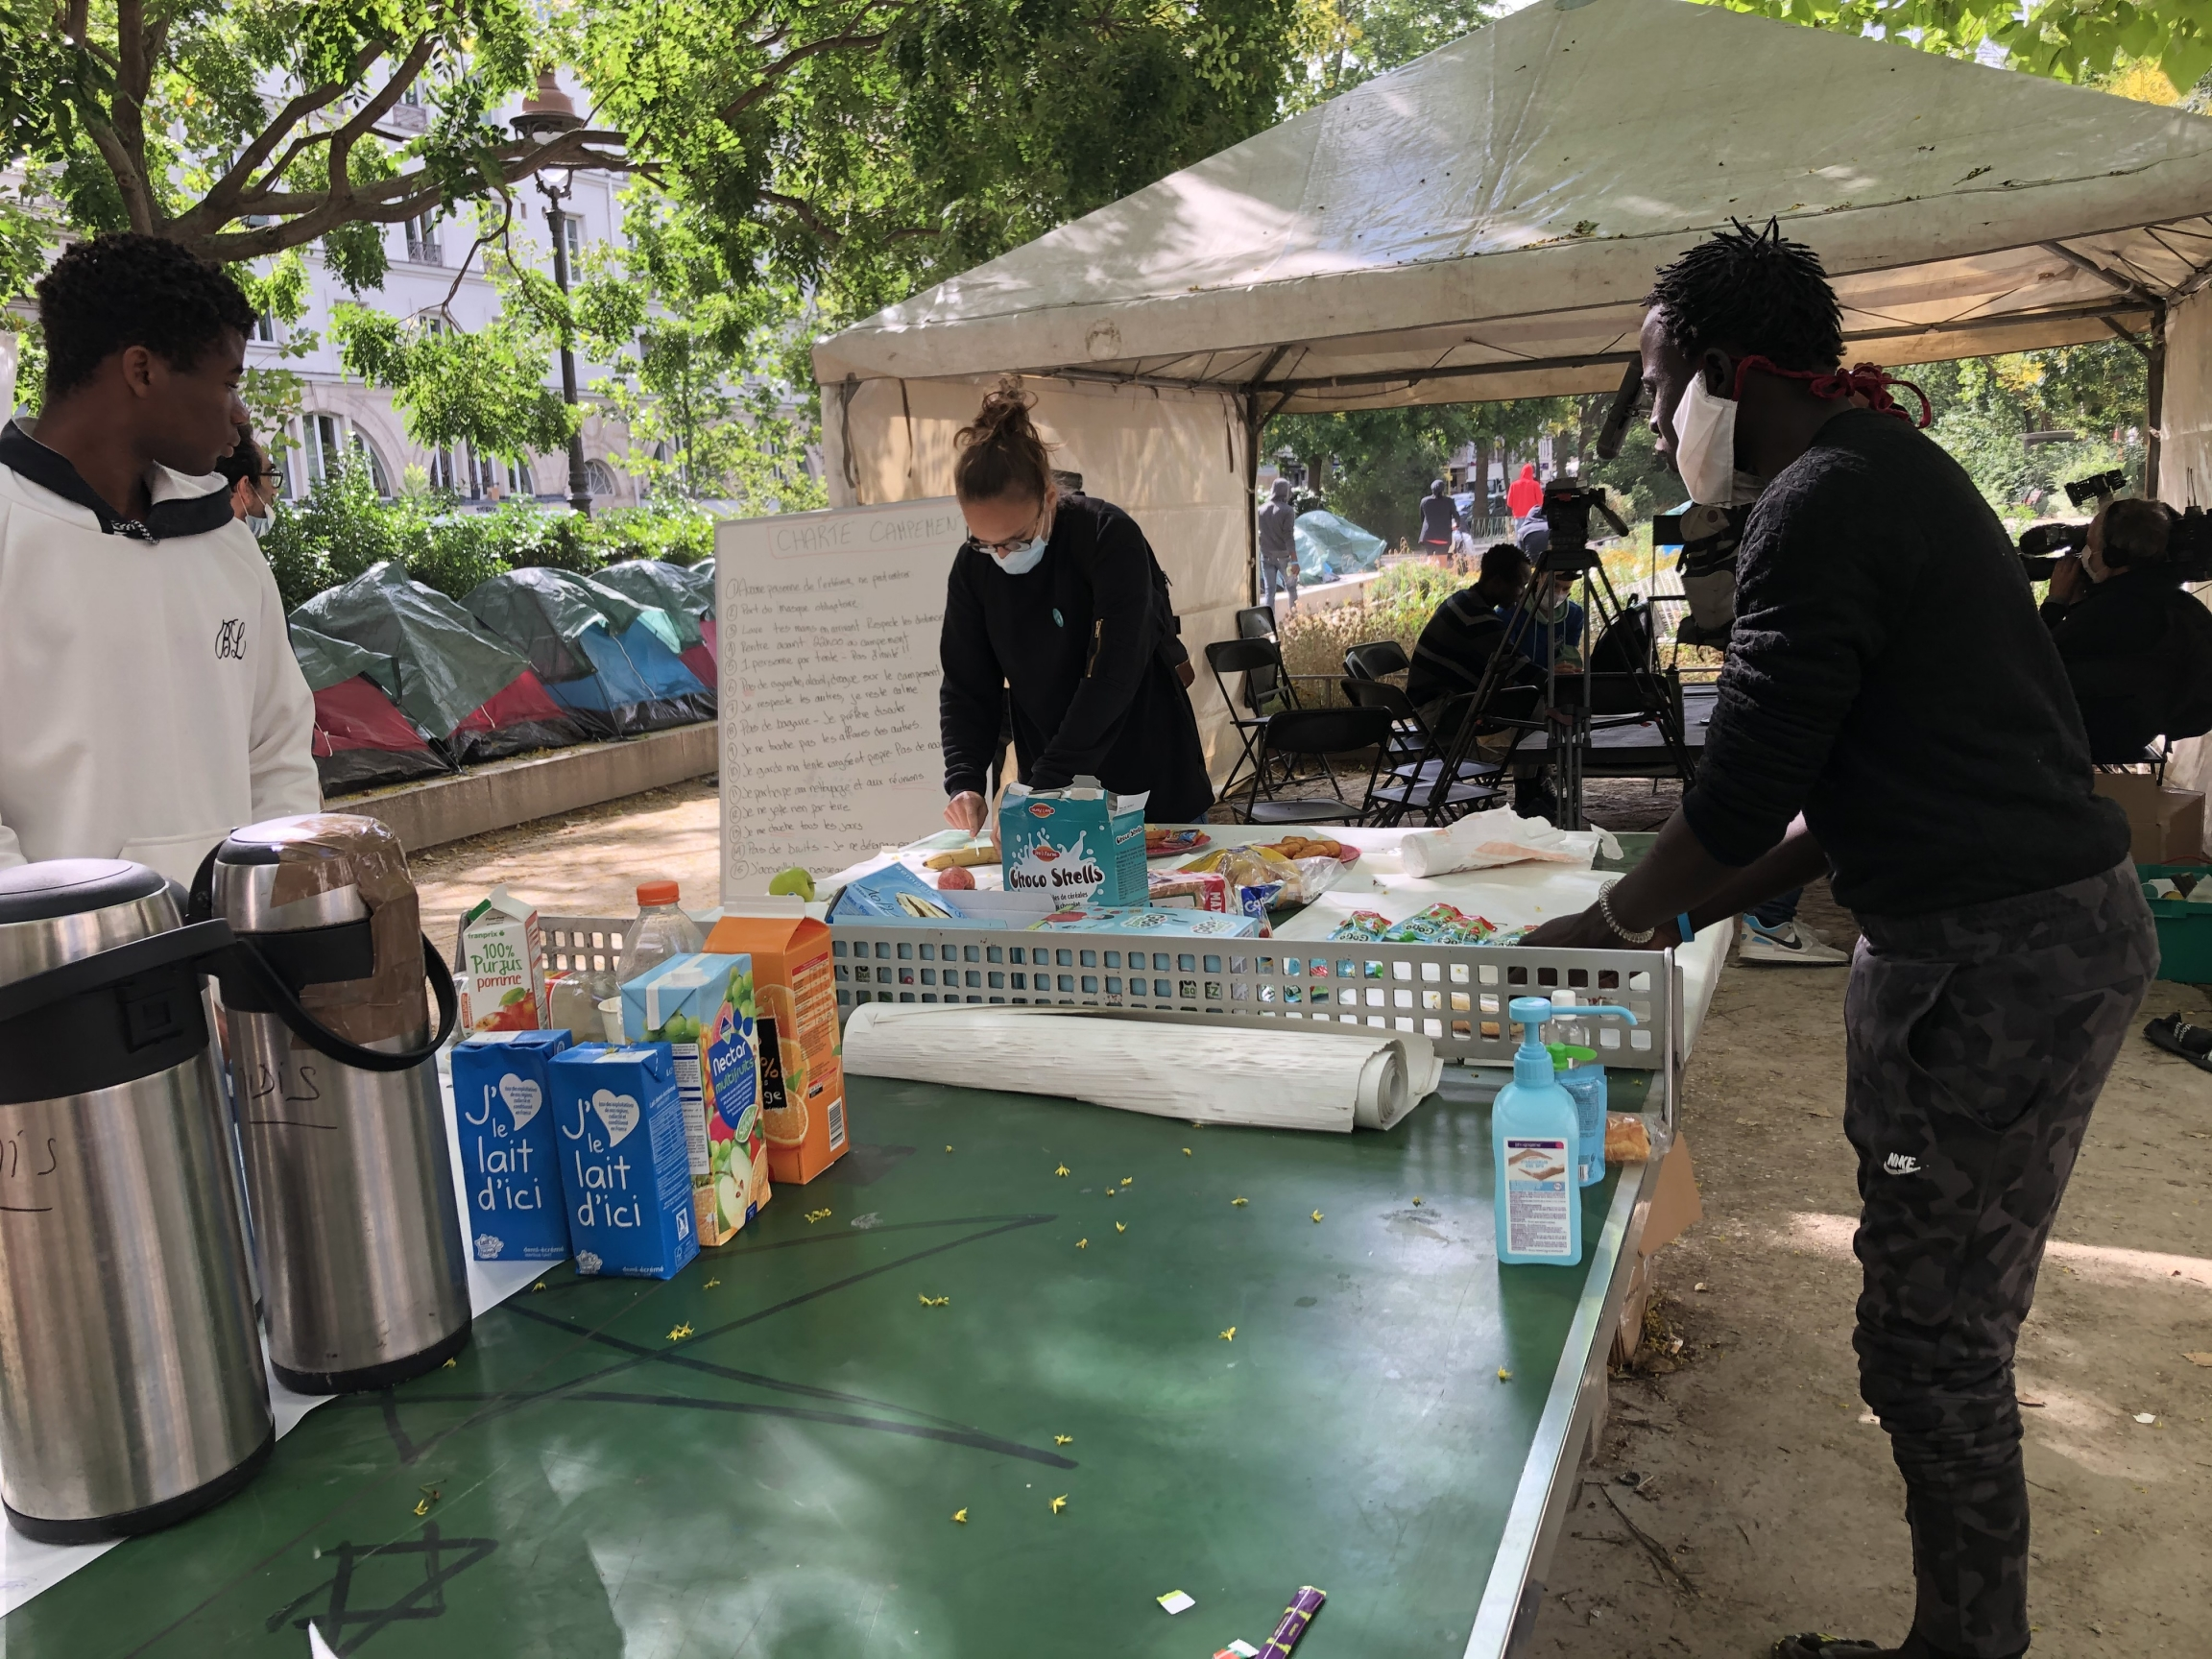 The temporary camp for 100 migrantsin Paris was set up by five nongovernmental organizations who are trying to help the boys find permanent housing. Here,breakfast was being served to the boys.